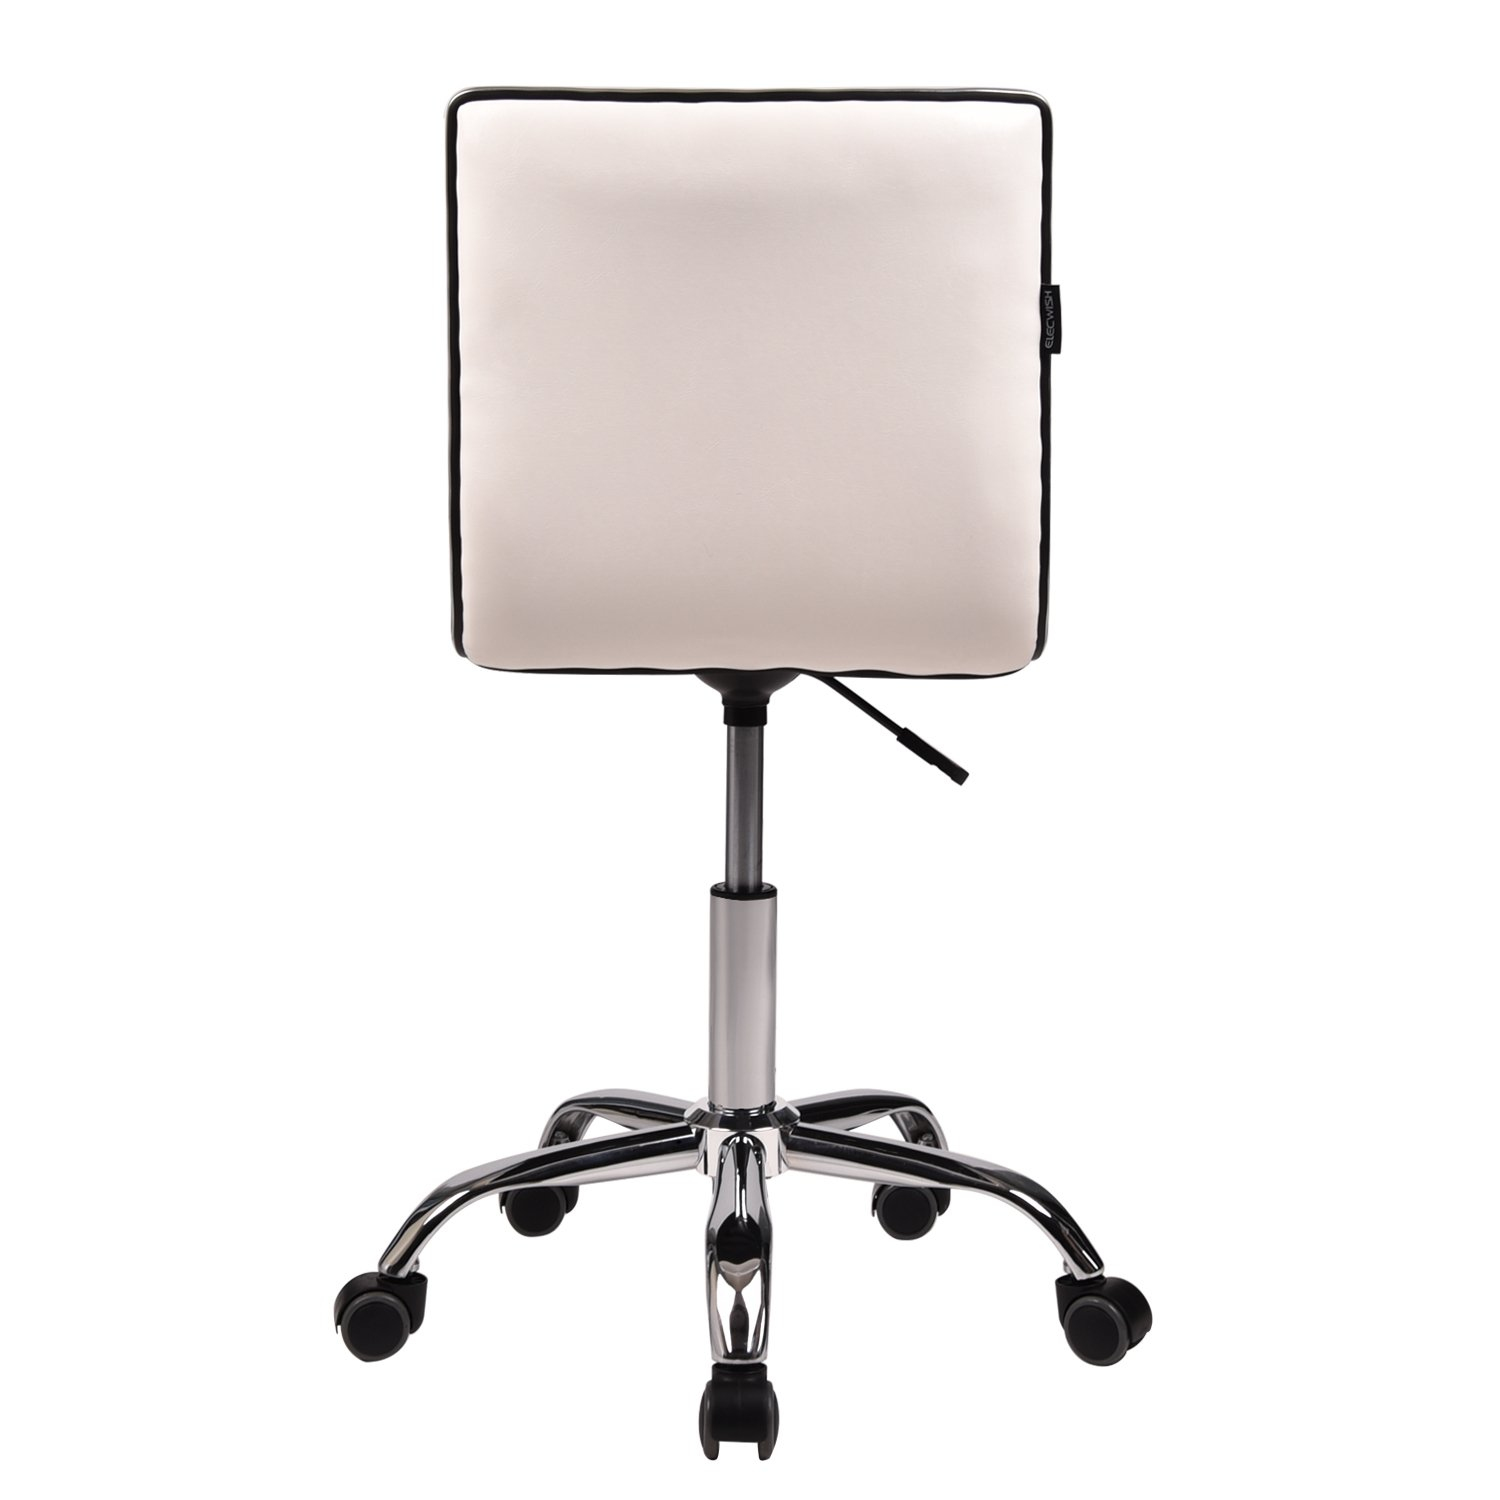 Set of 2 Office Task Chairs Mid-Back Armless Ribbed PU Leather Swivel Conference Chair Black